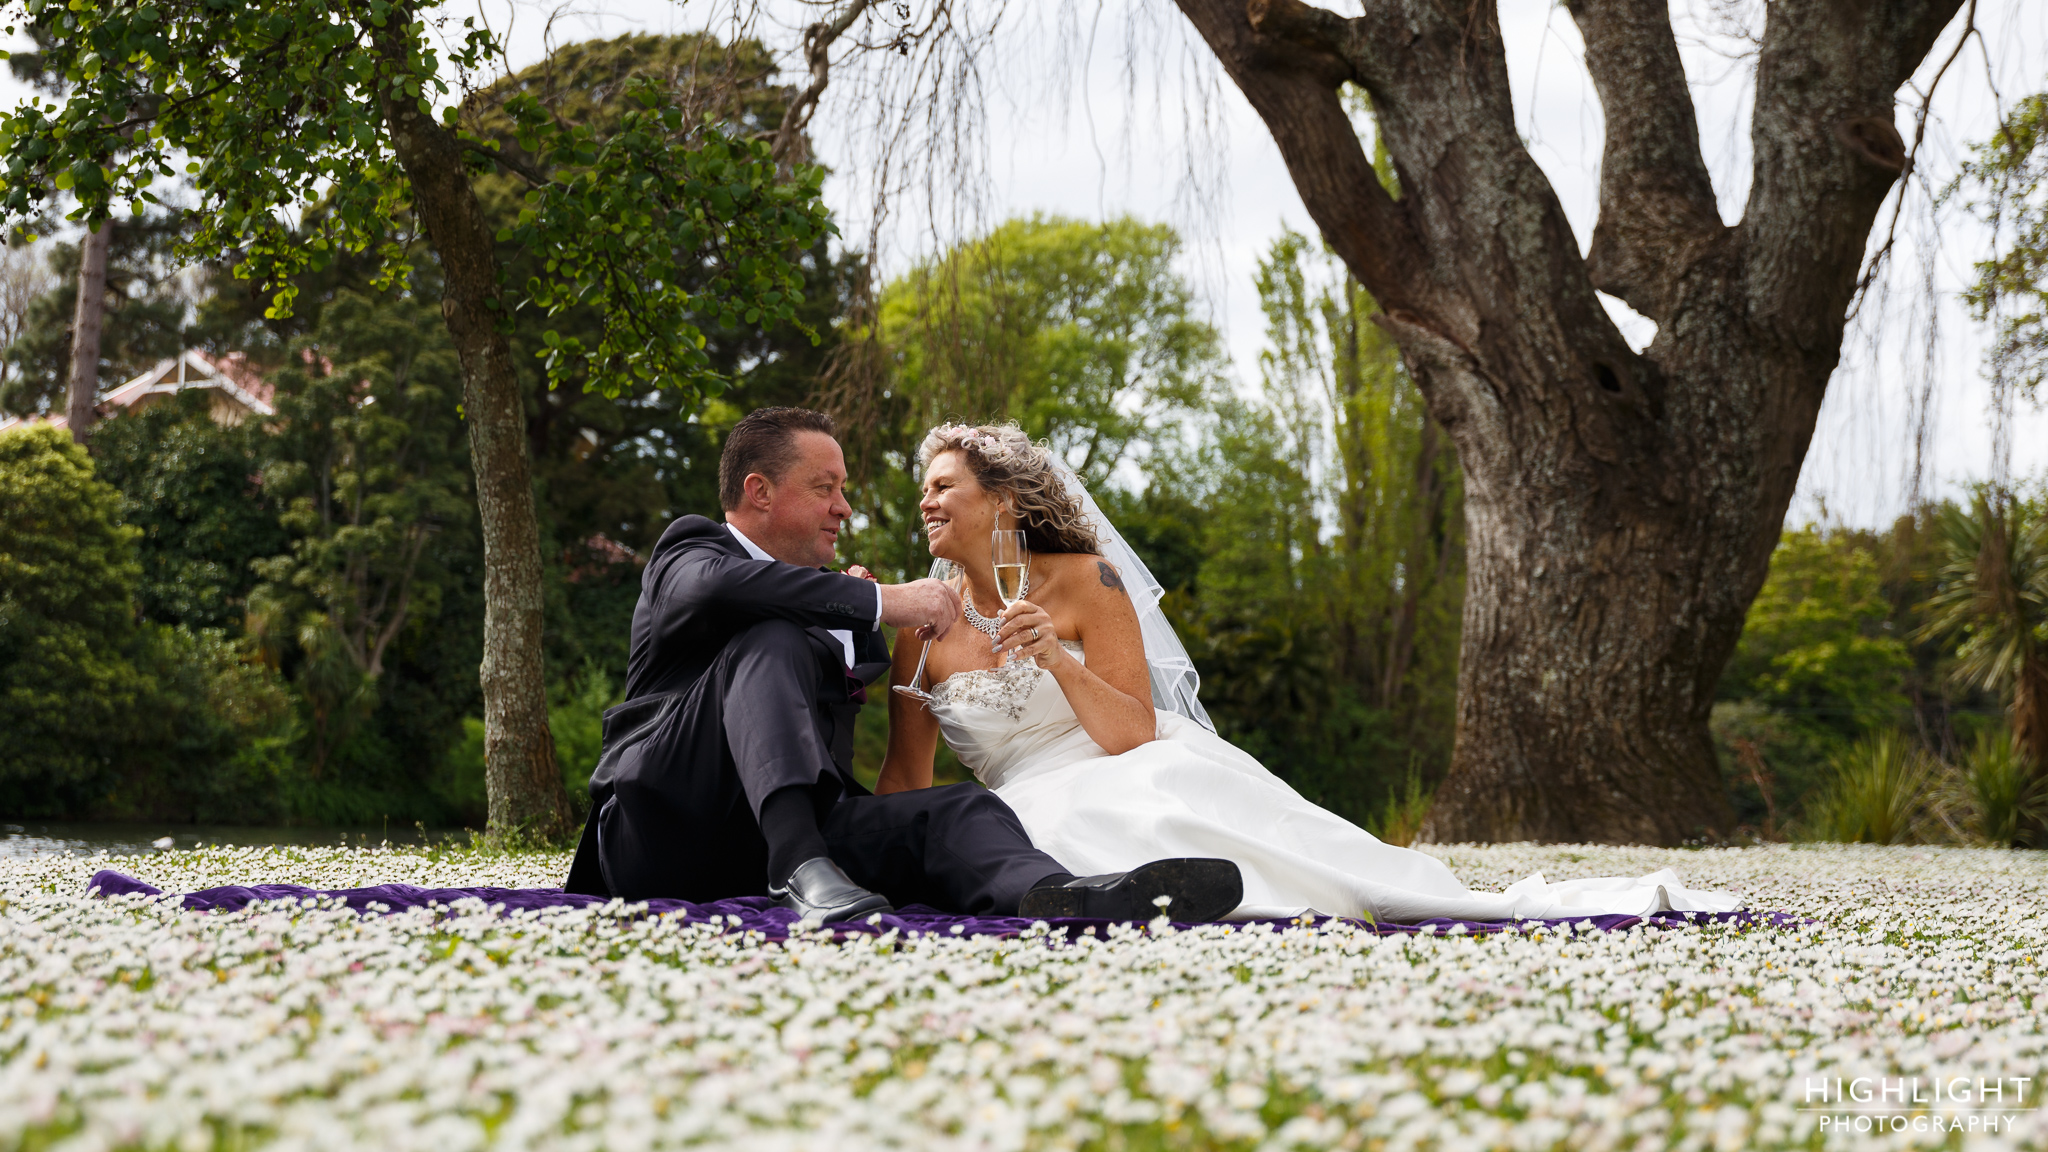 highlight_wedding_photography_palmerston_north_manawatu_chalet_wedding-66.jpg